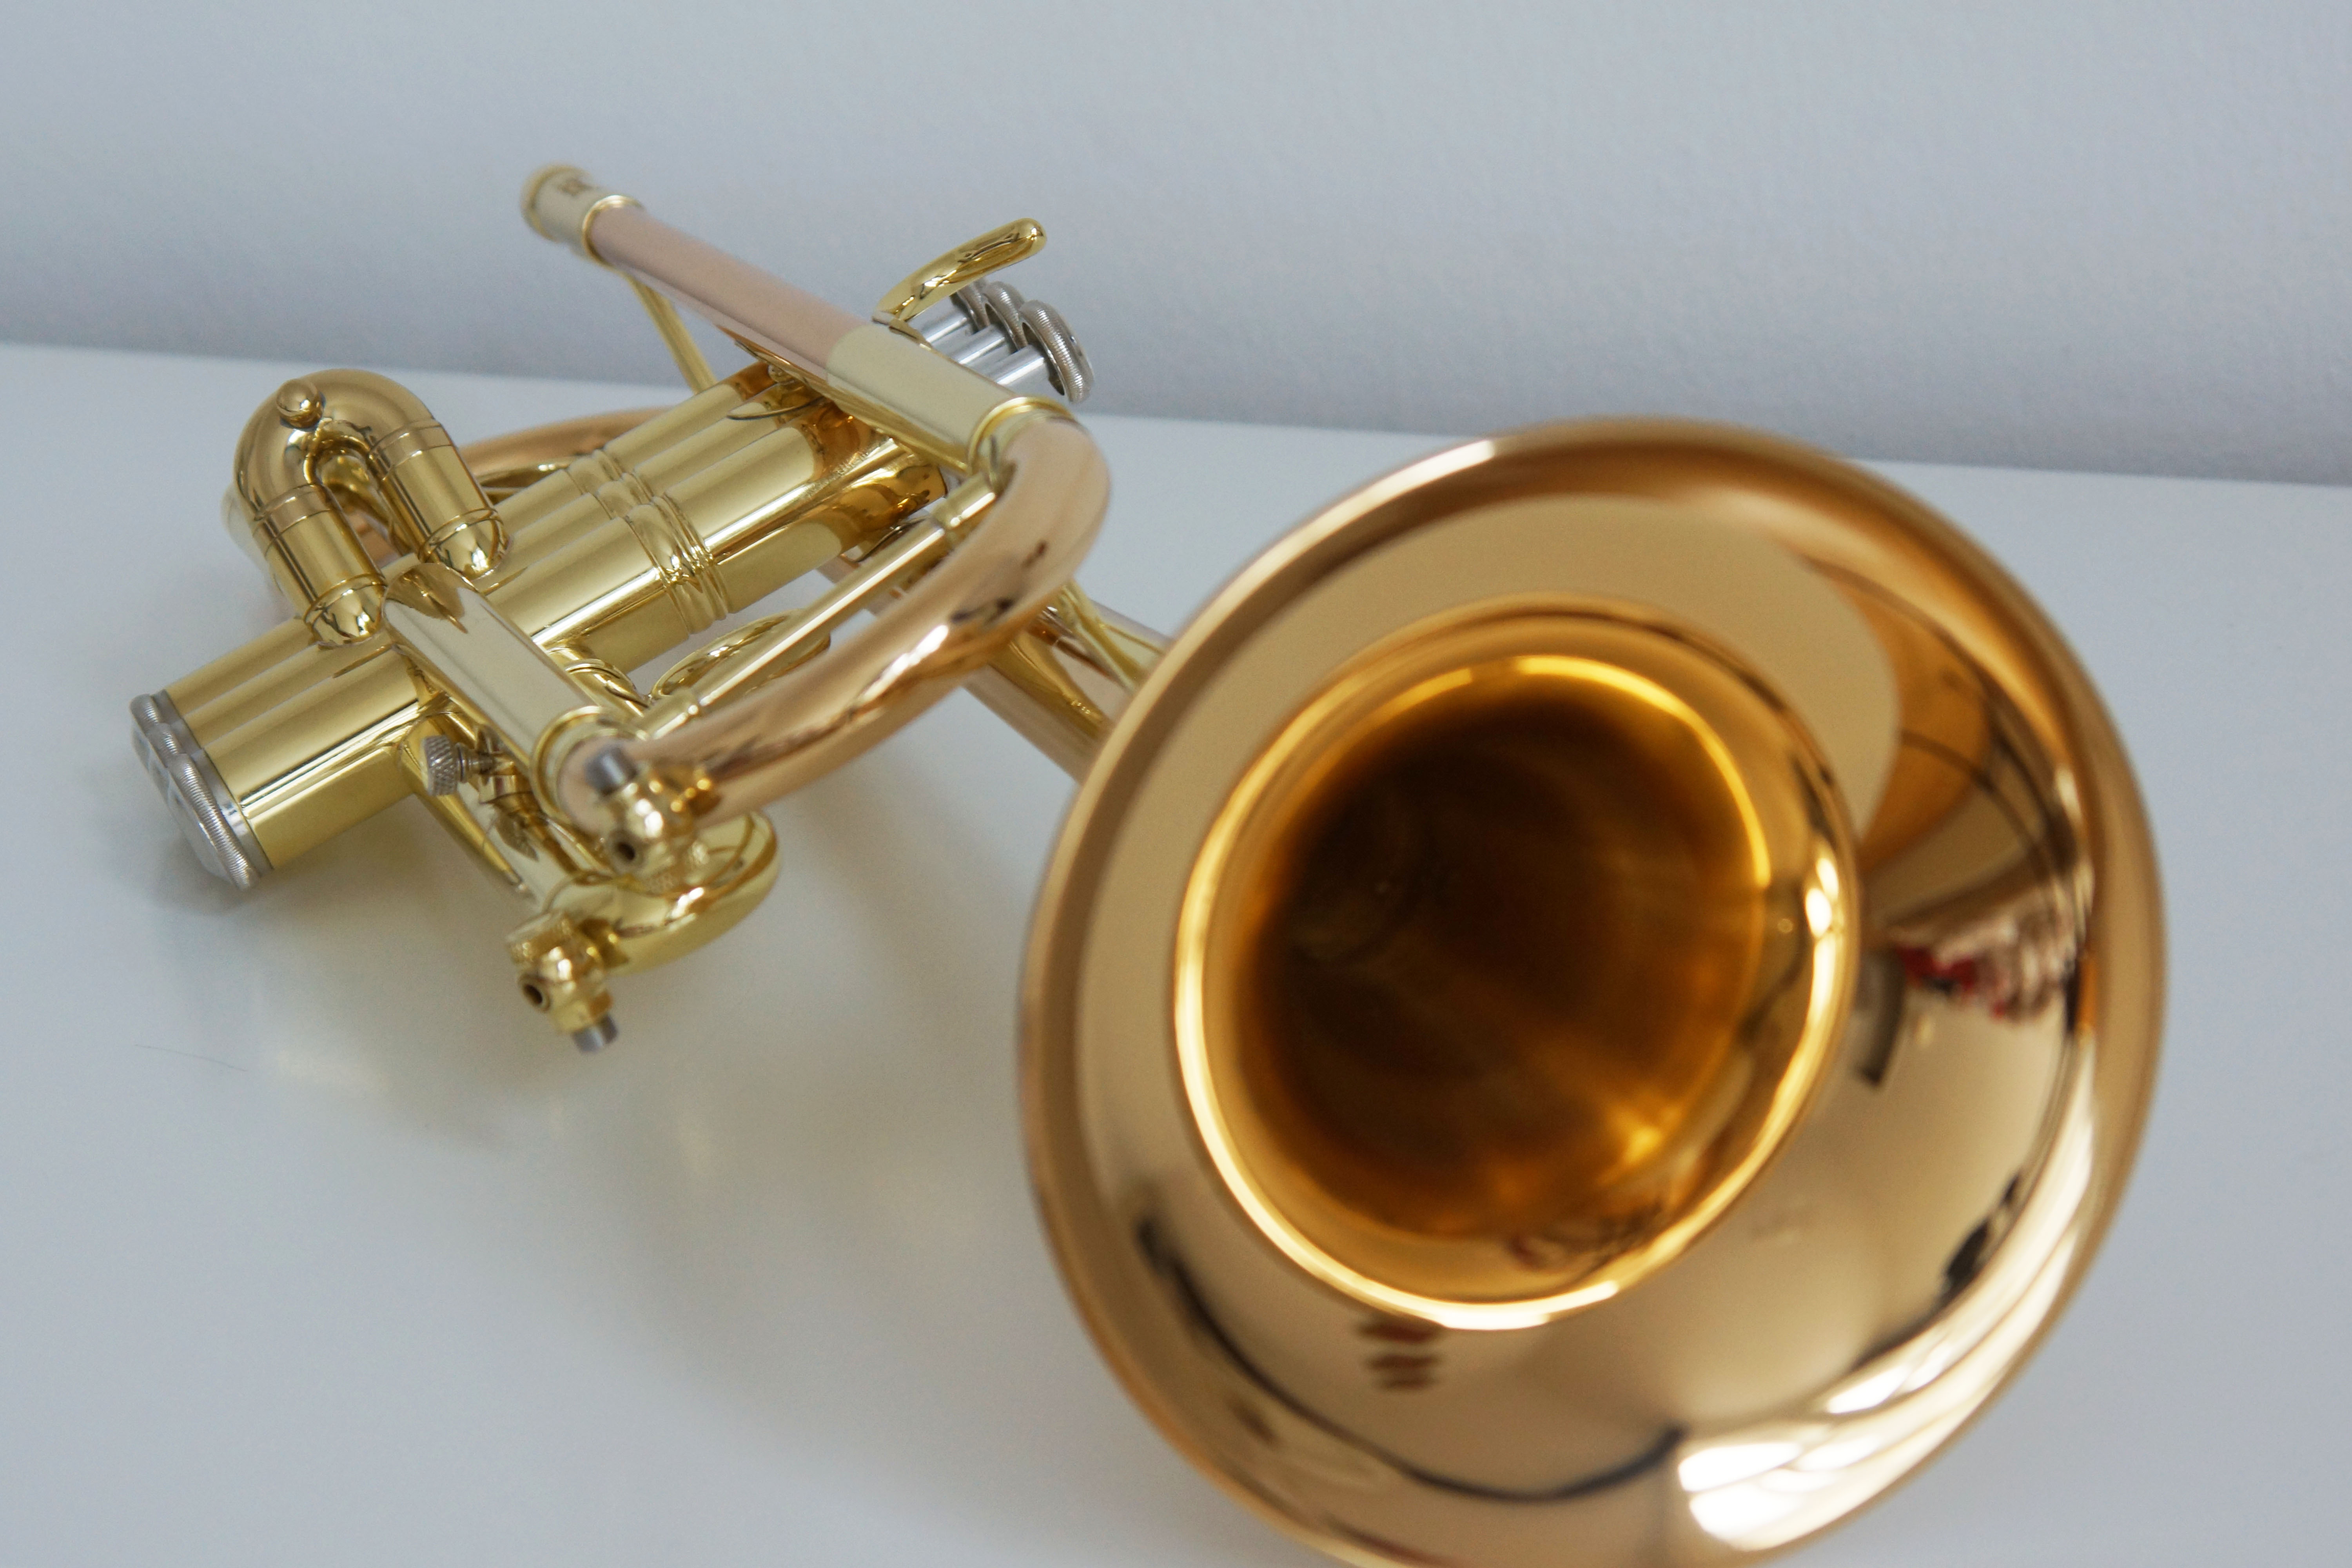 trumpetscoutfides pioneer3 trumpetscout